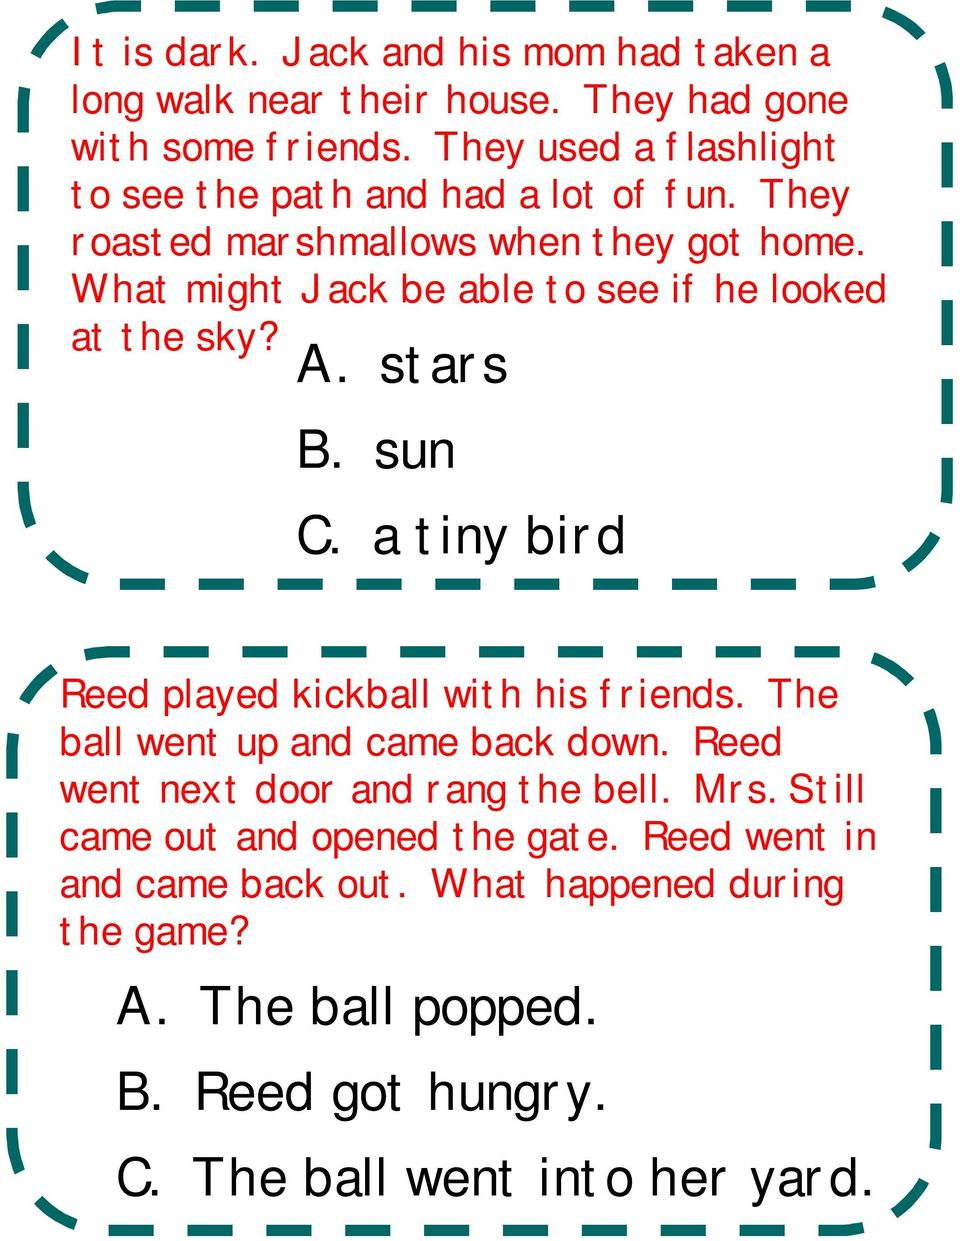 What might Jack be able to see if he looked at the sky? A. stars B. sun C. a tiny bird Reed played kickball with his friends.